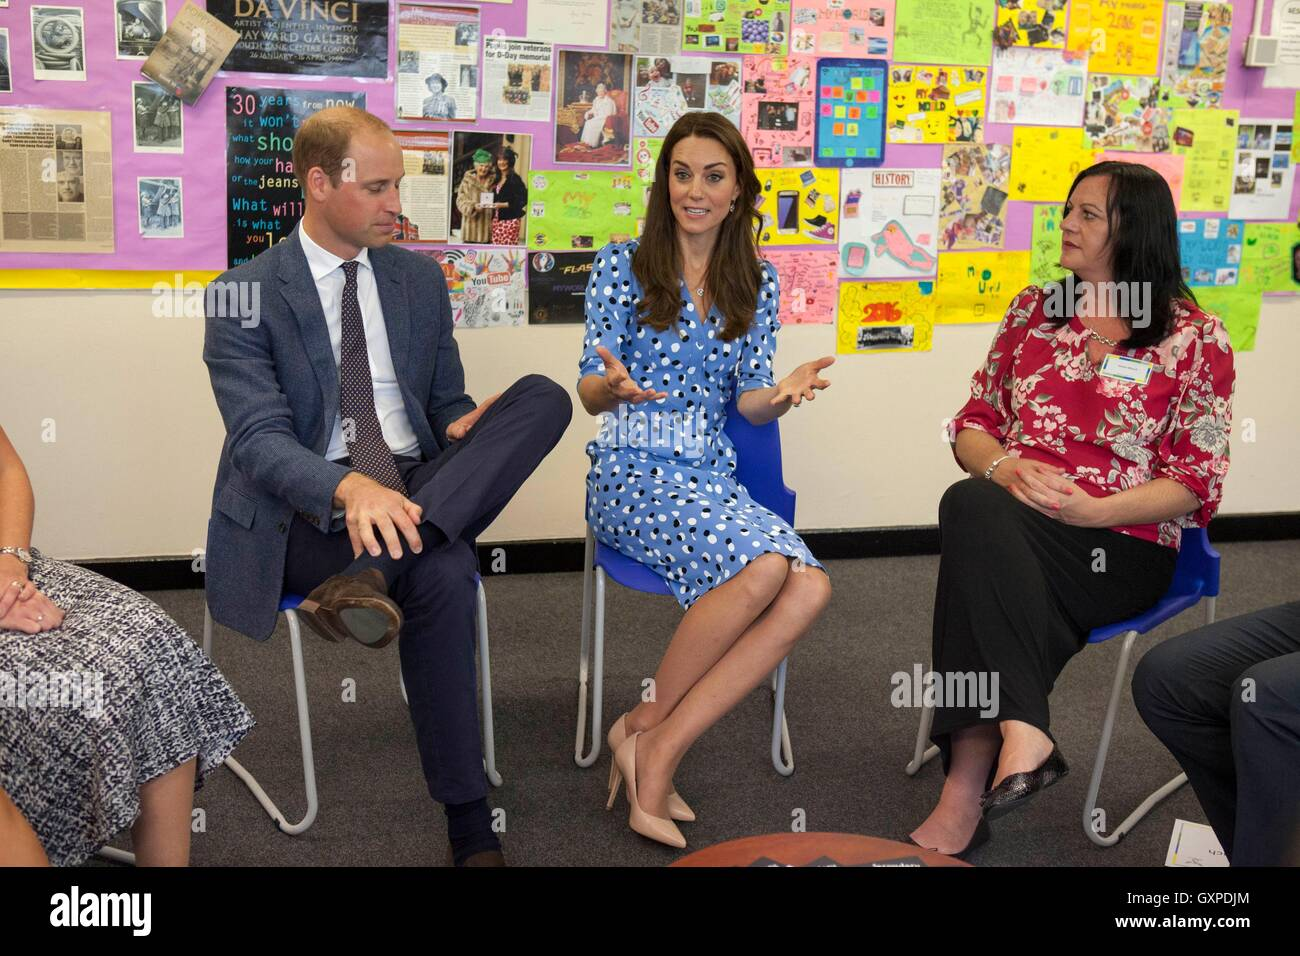 The Duke and Duchess of Cambridge meeting parents during their visit to Stewards Academy in Harlow, Essex, where - Stock Image